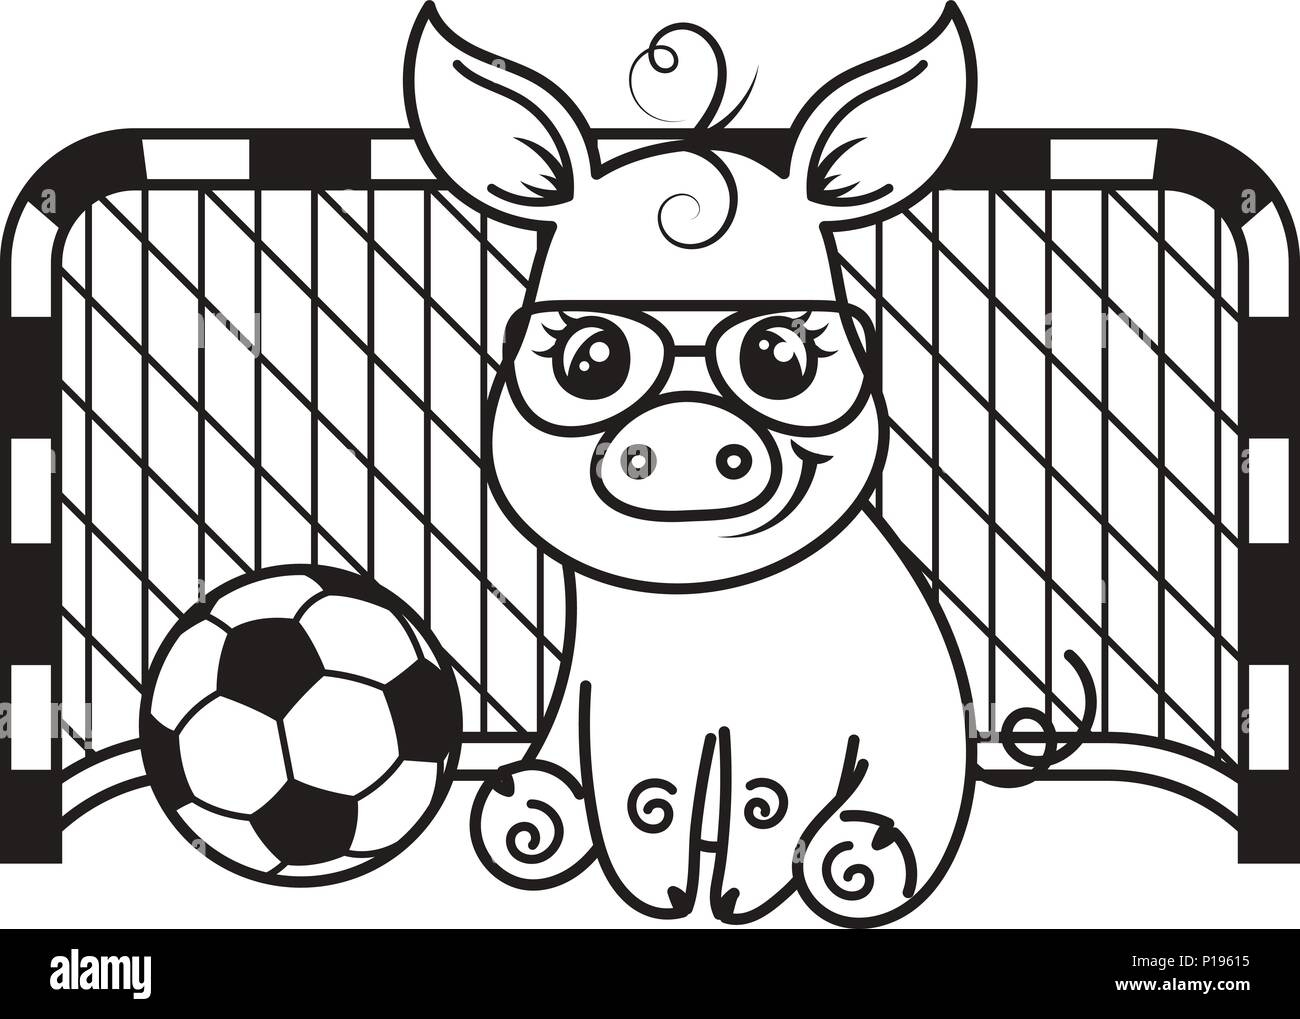 Cute cartoon pig with a soccer ball. Vector illustration. Coloring page - Stock Vector